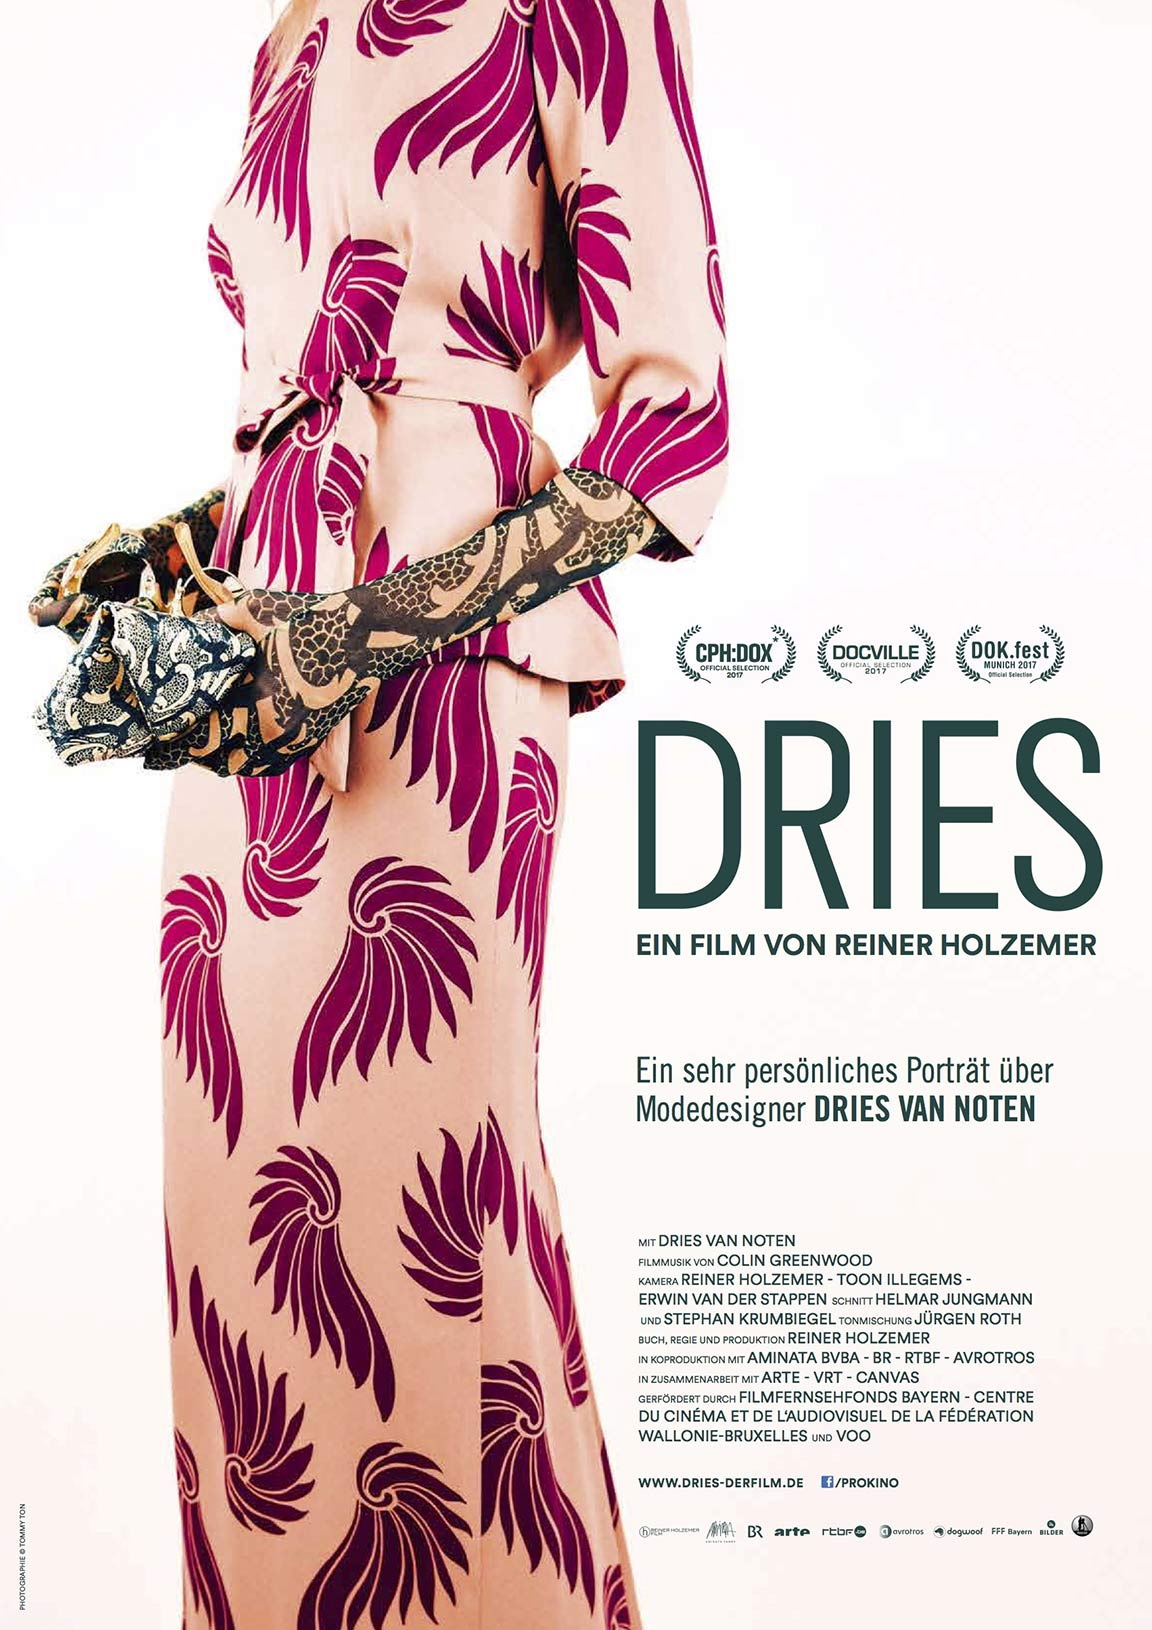 Dries Poster #1